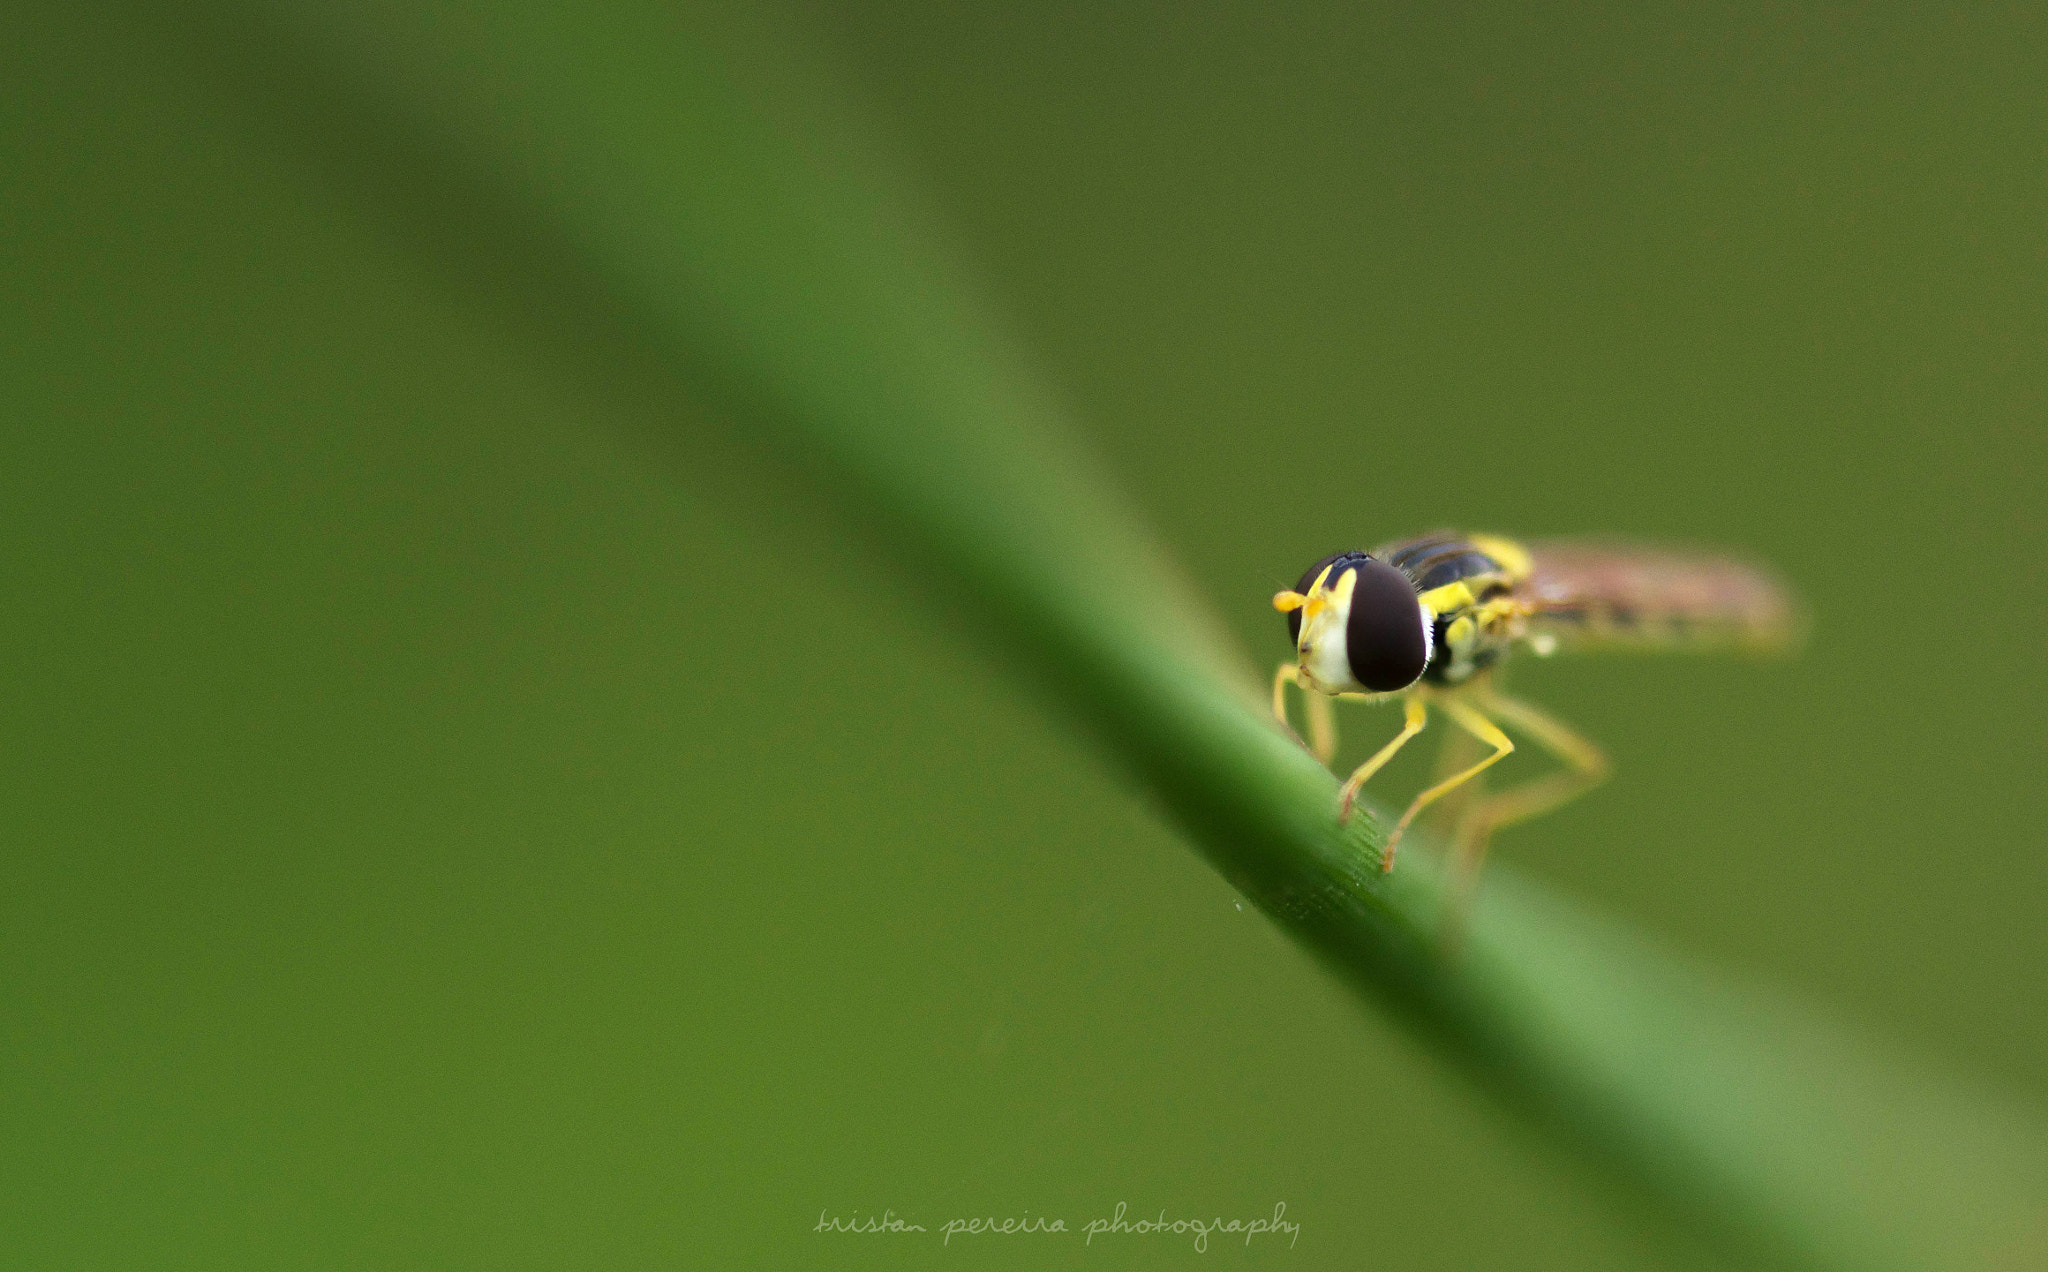 Photograph A hoverfly in a green world... by Tristan Pereira on 500px